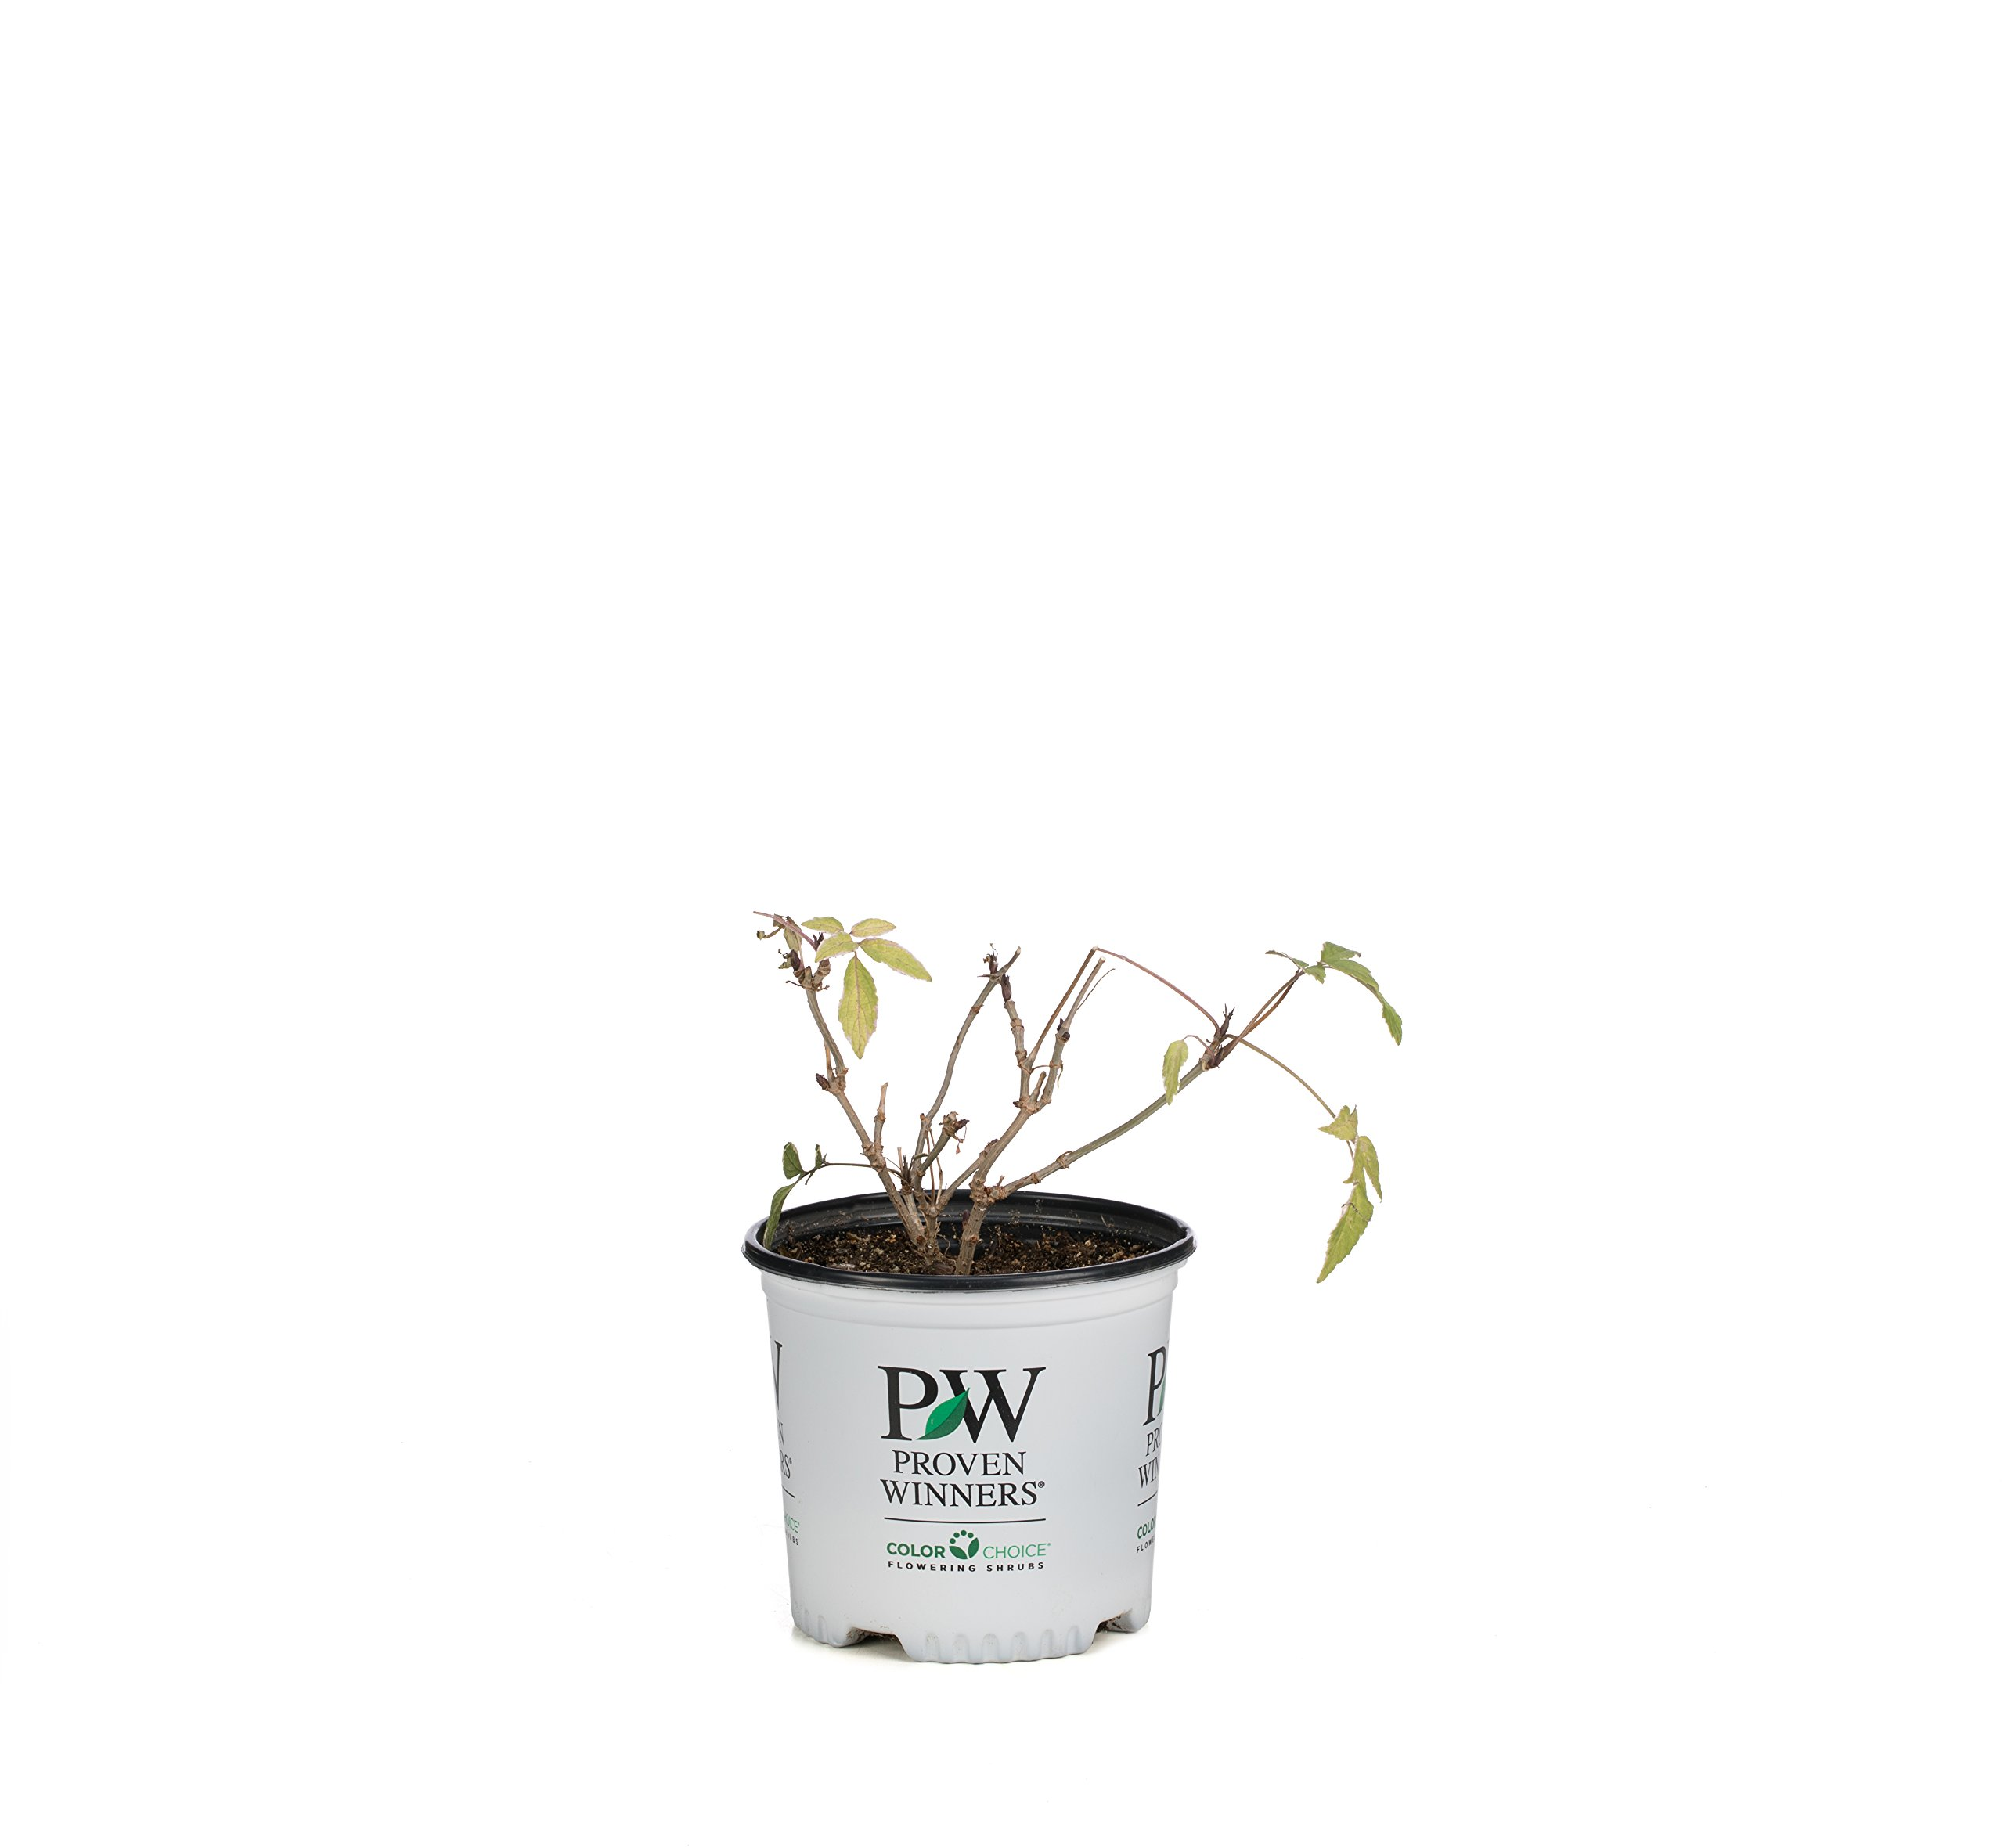 Instant Karma Elderberry (Sambucus) Live Shrub, White Flowers and Variegated Foliage, 1 Gallon by Proven Winners (Image #4)